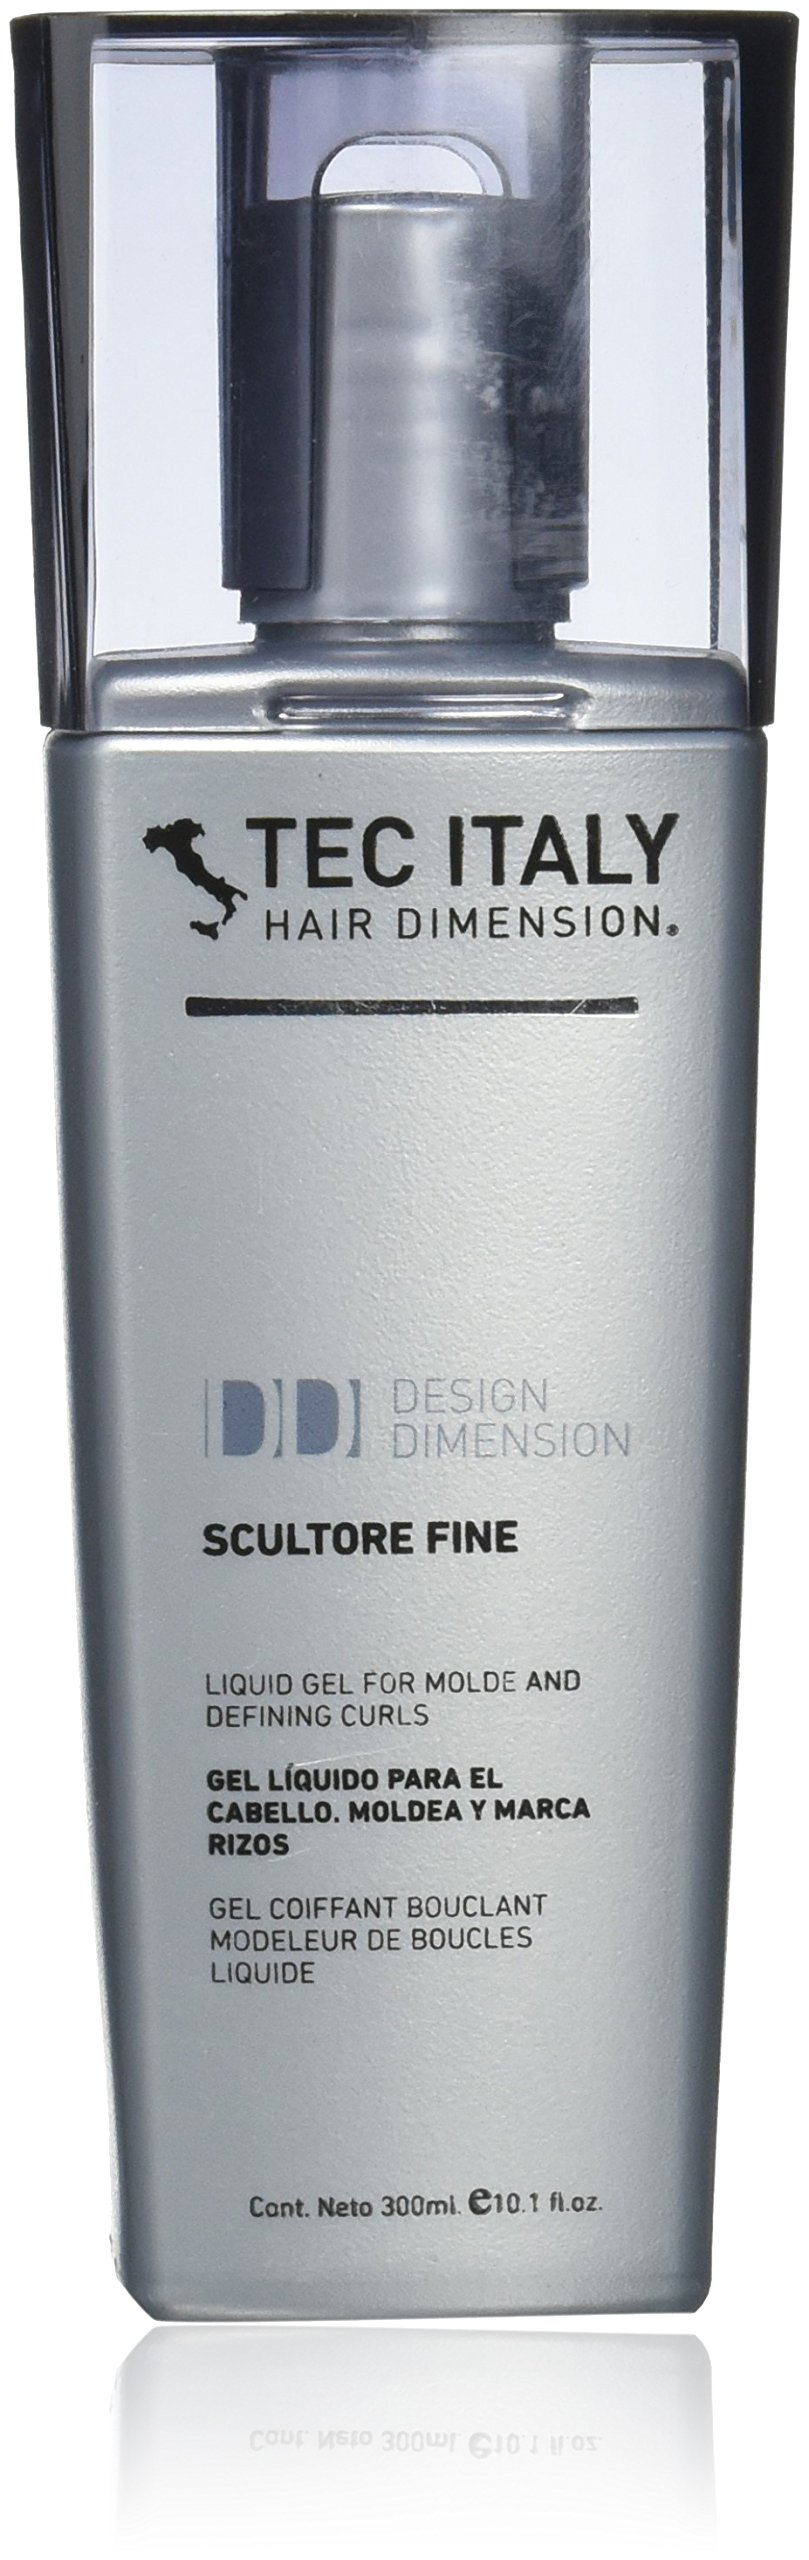 Tec Italy Scultore Fine Liquid Hair Gel for Sculpt & Define Curls - 300 ml